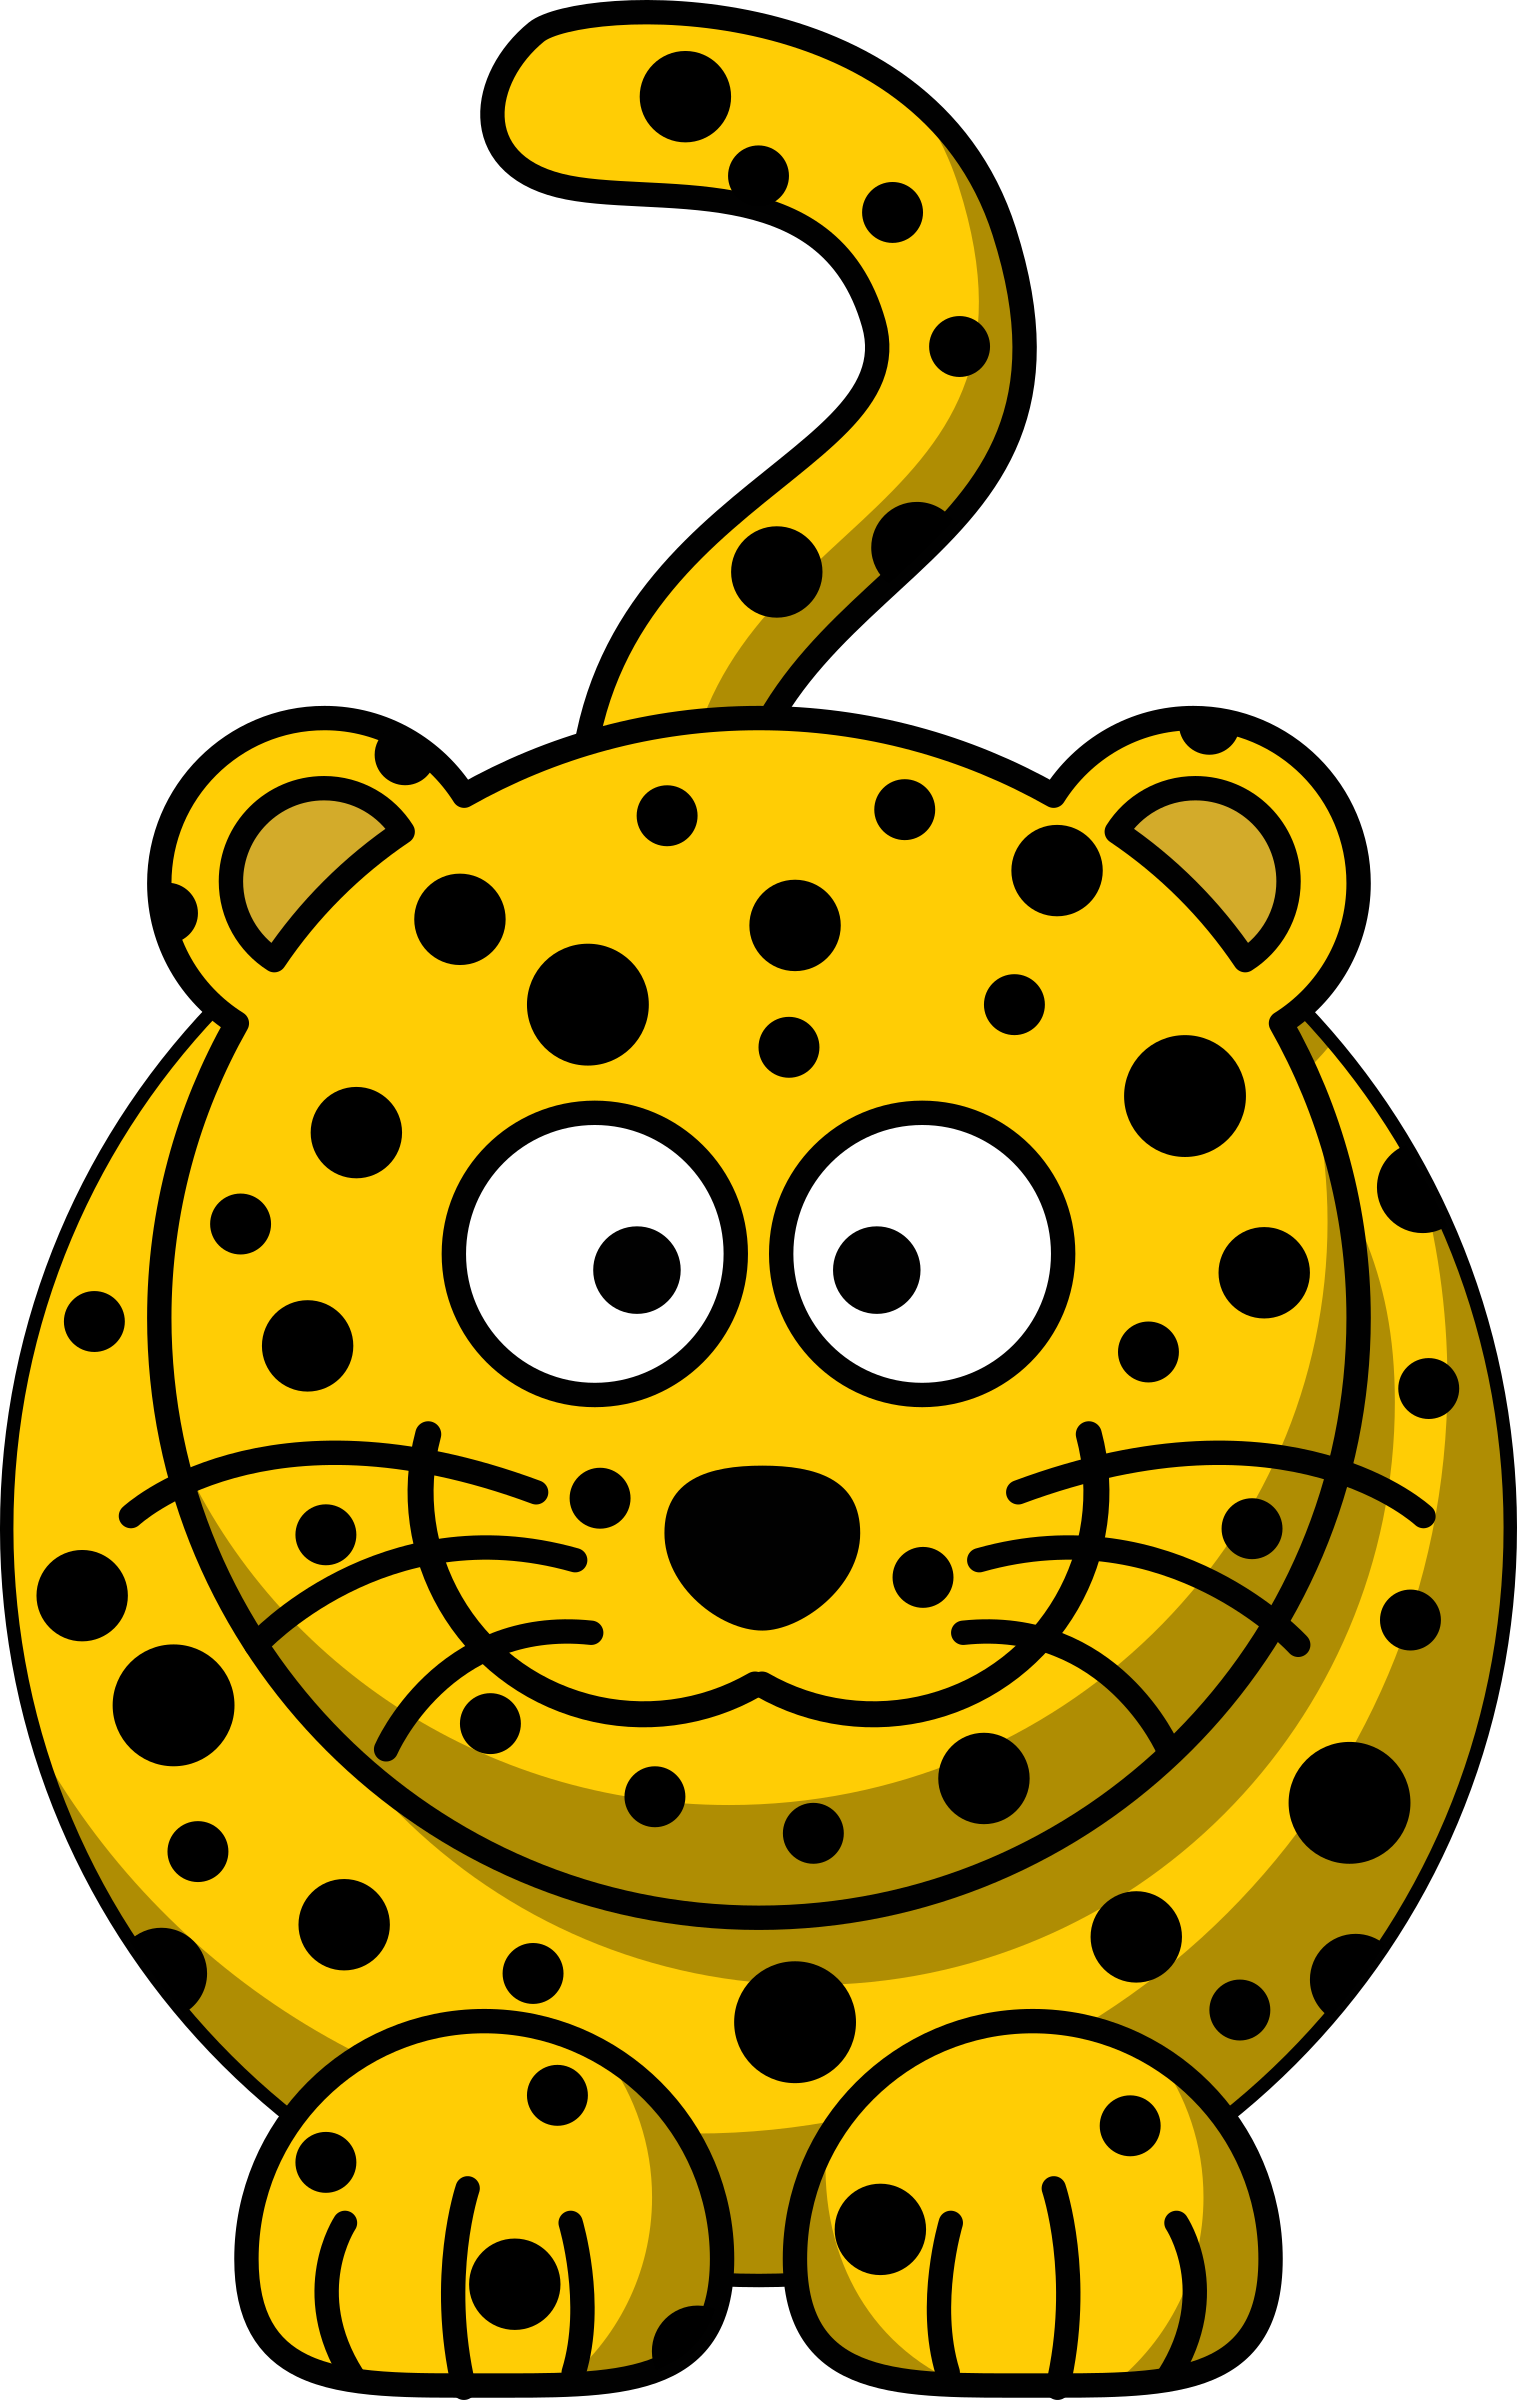 picture royalty free library Jaguar cartoon free on. Cheetah clipart cheetah cub.